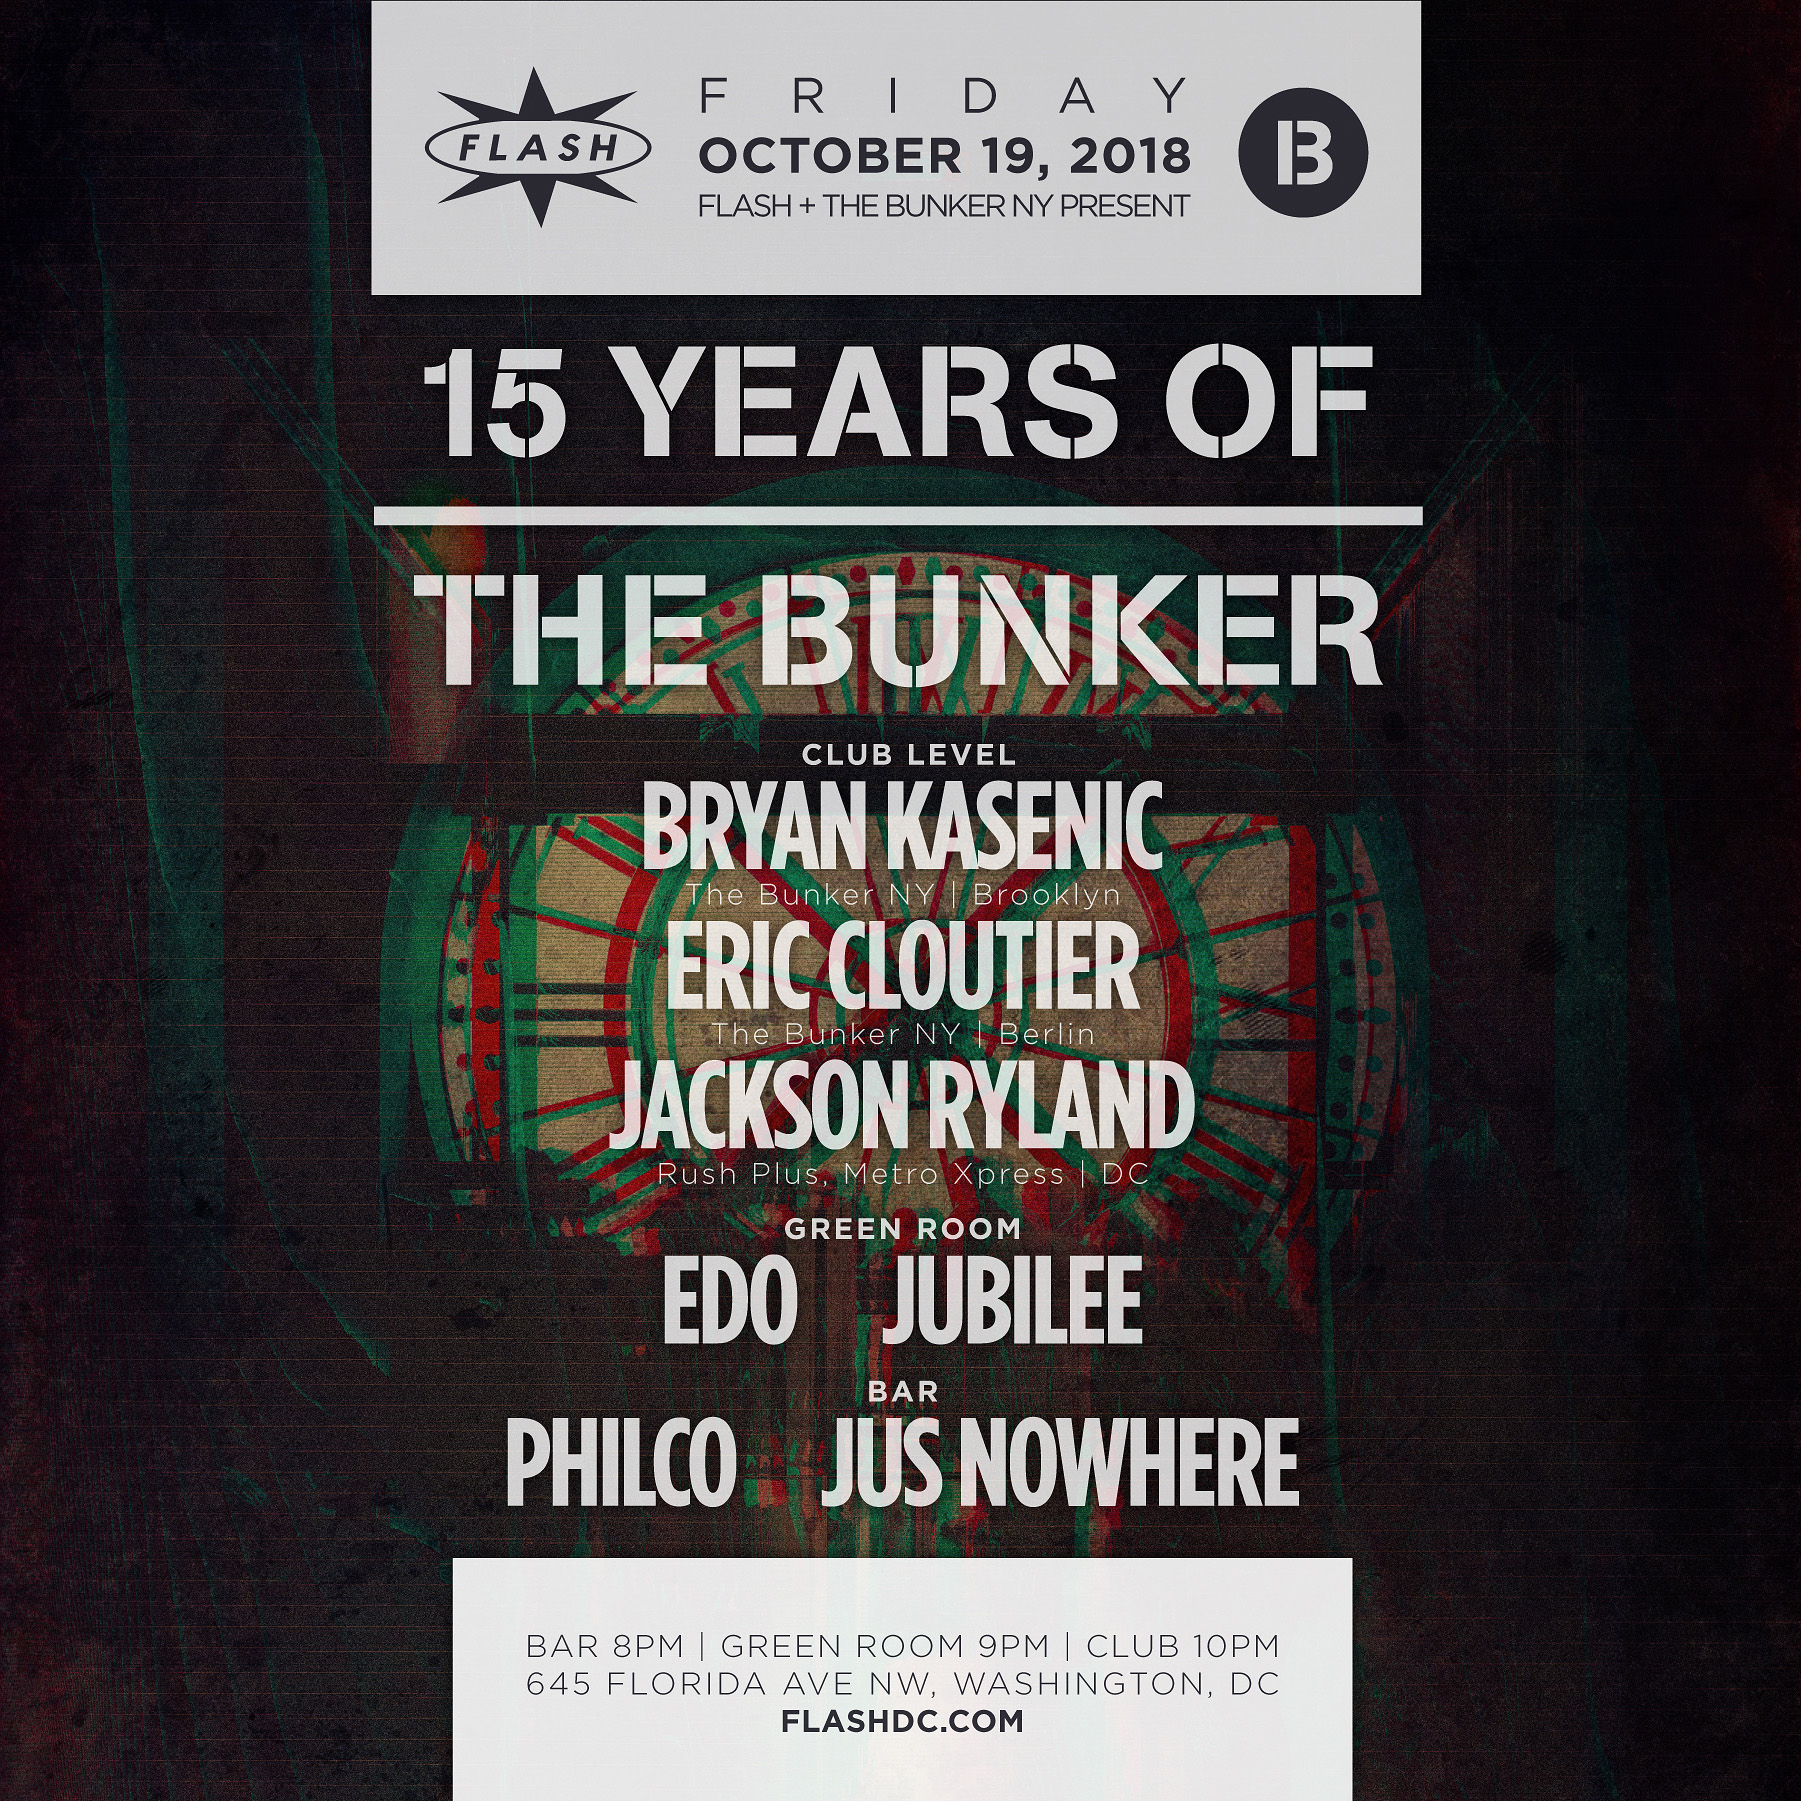 The Bunker 15 Year Anniversary: Bryan Kasenic - Eric Cloutier event thumbnail